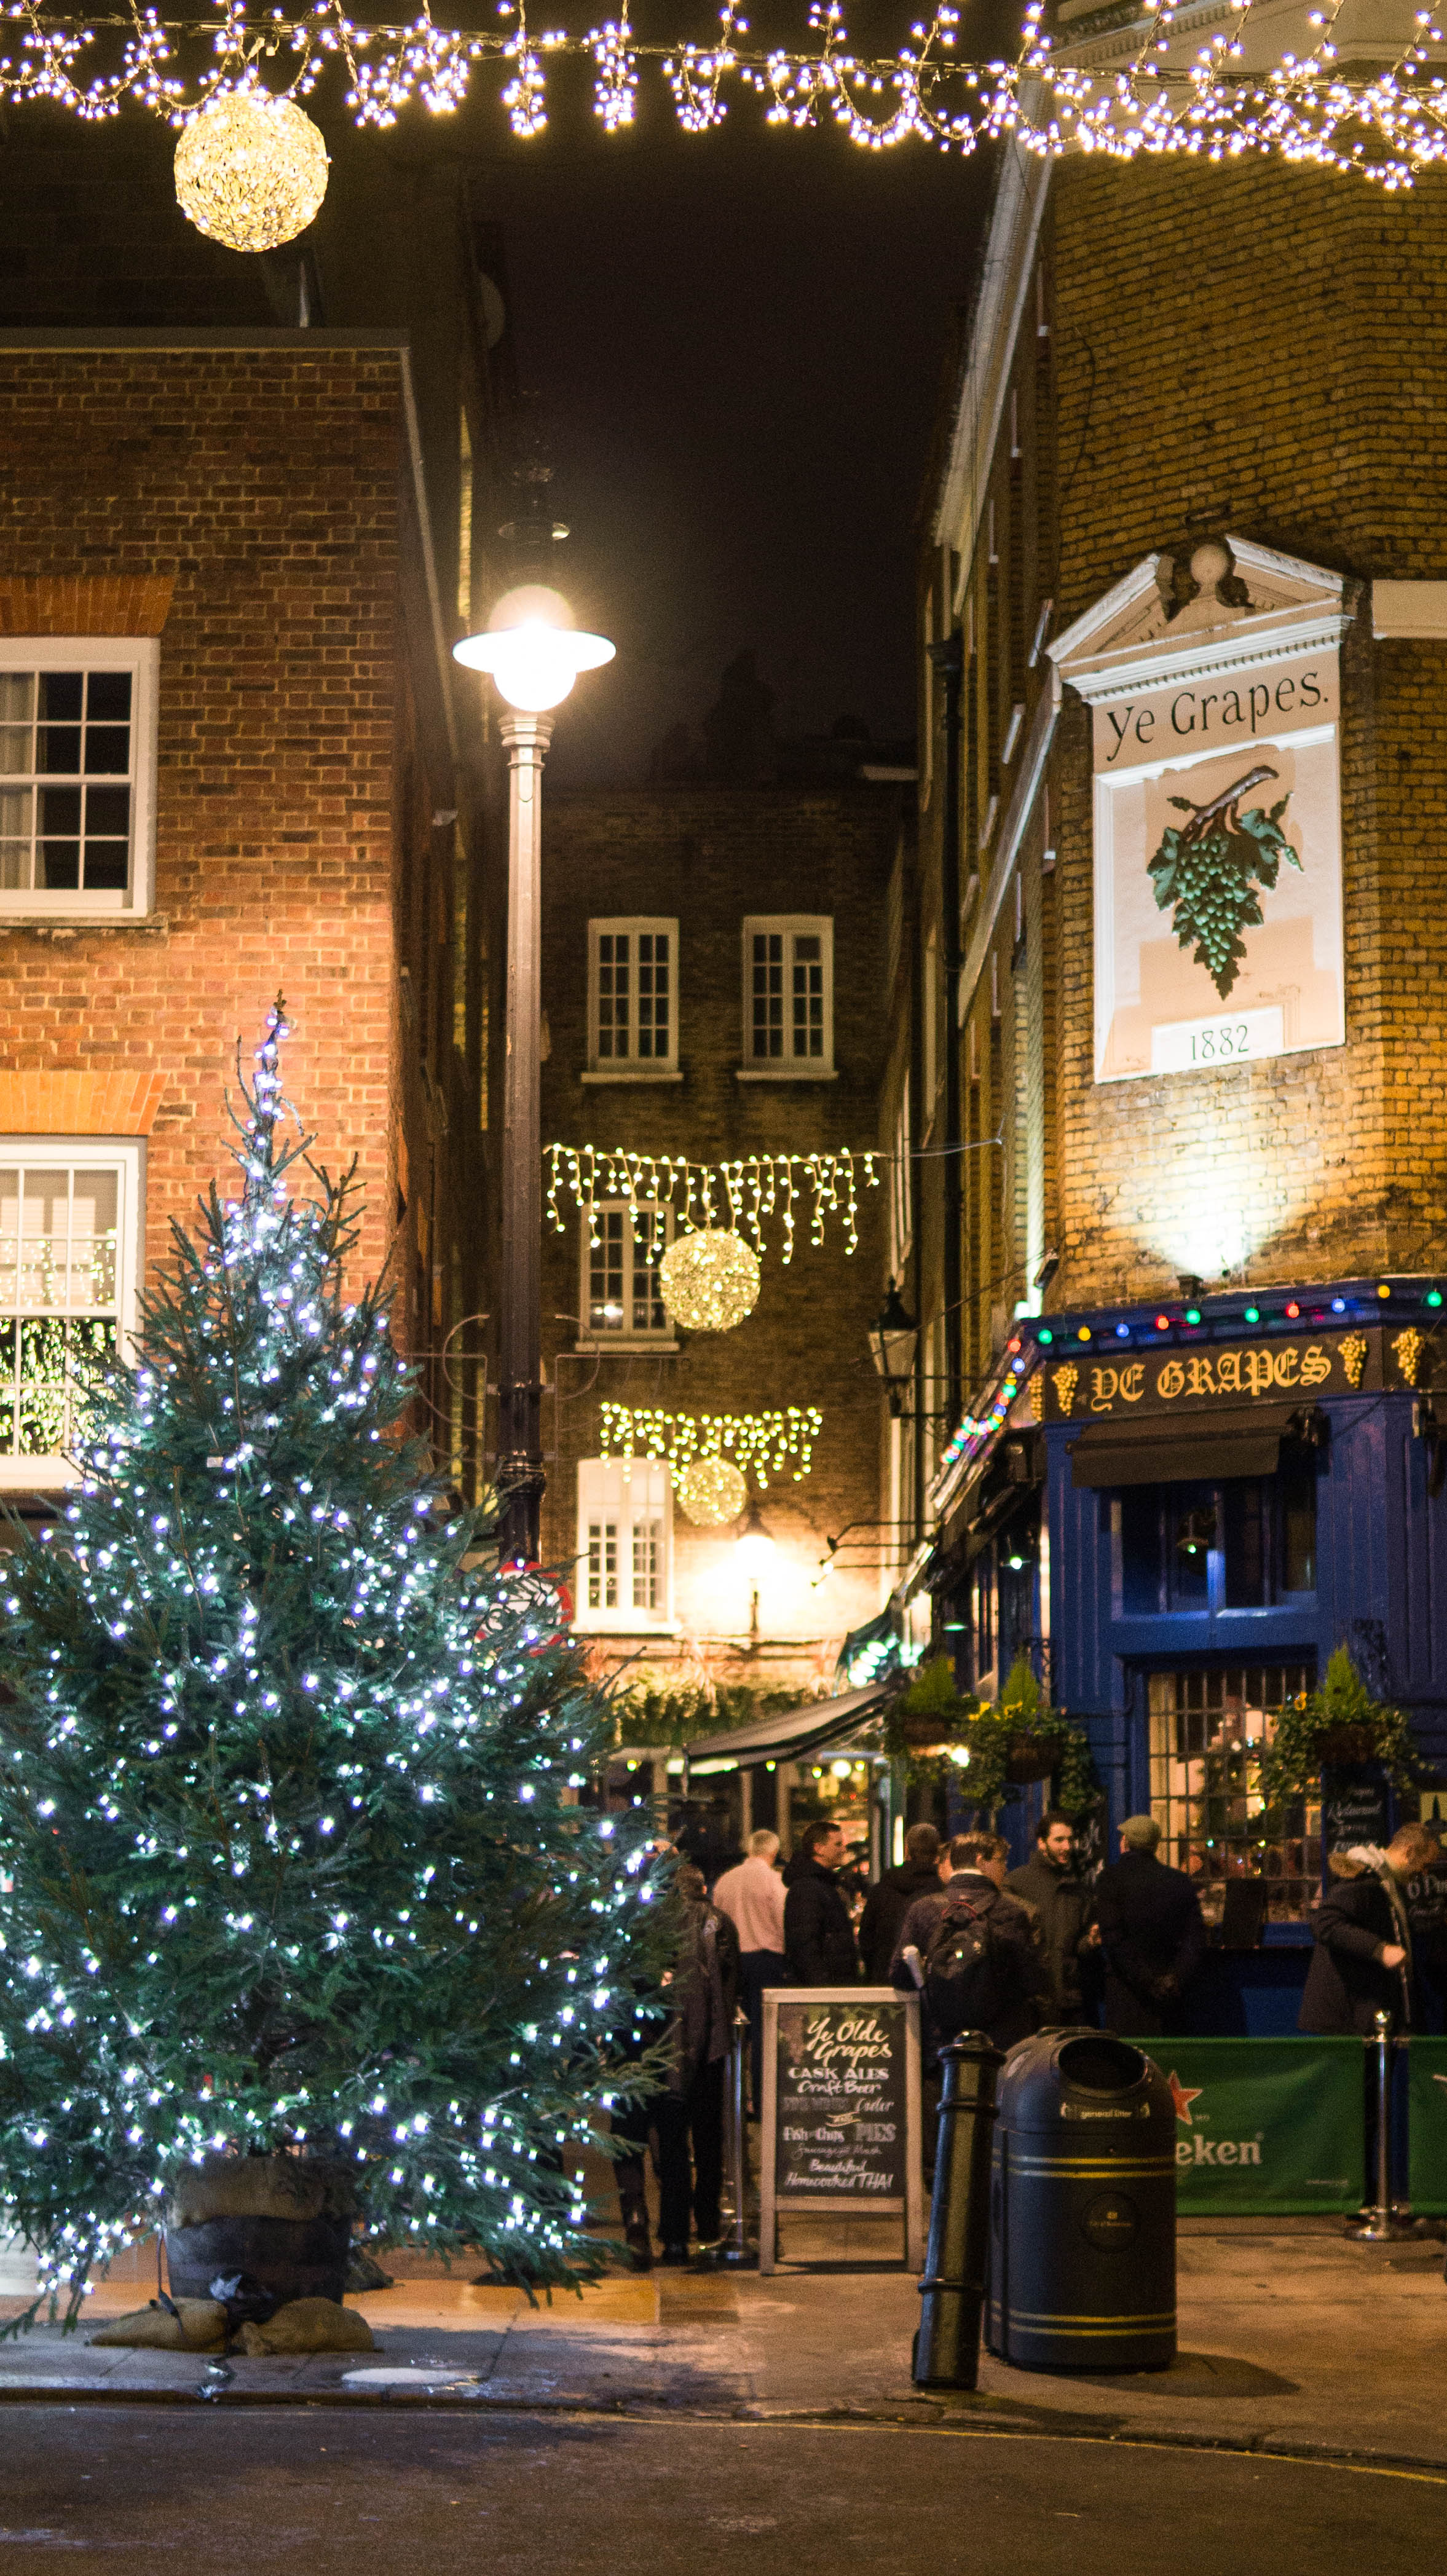 London At Christmas Images.London Christmas Lights Walk What If We Walked